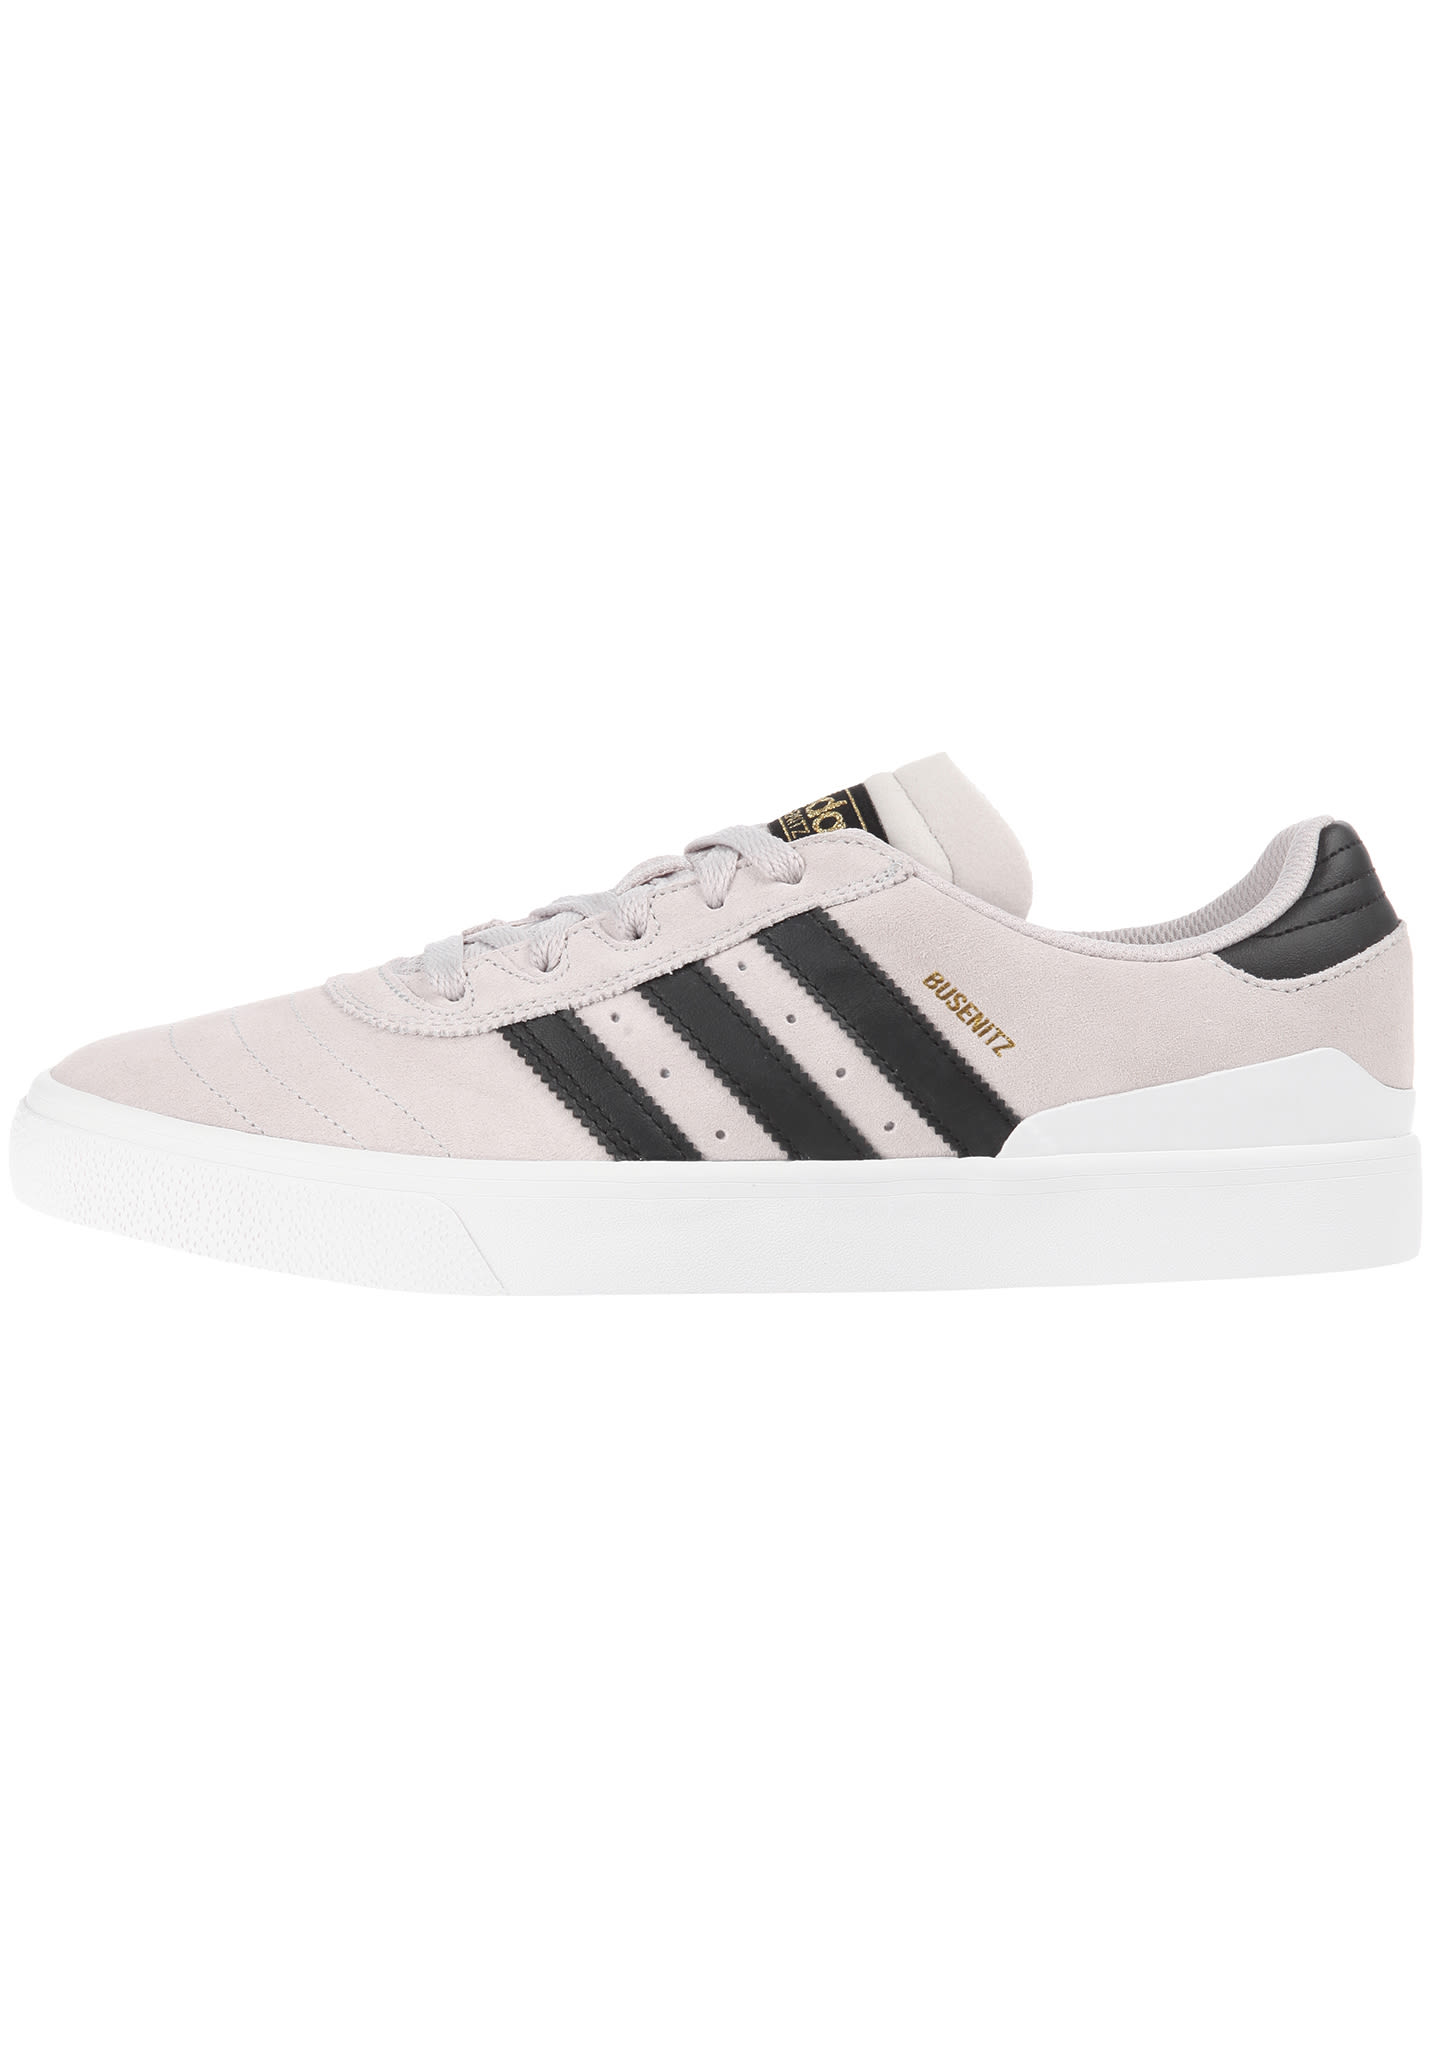 competitive price 349ce 851ab Adidas Skateboarding Busenitz Vulc - Sneakers for Men - Beige - Planet  Sports